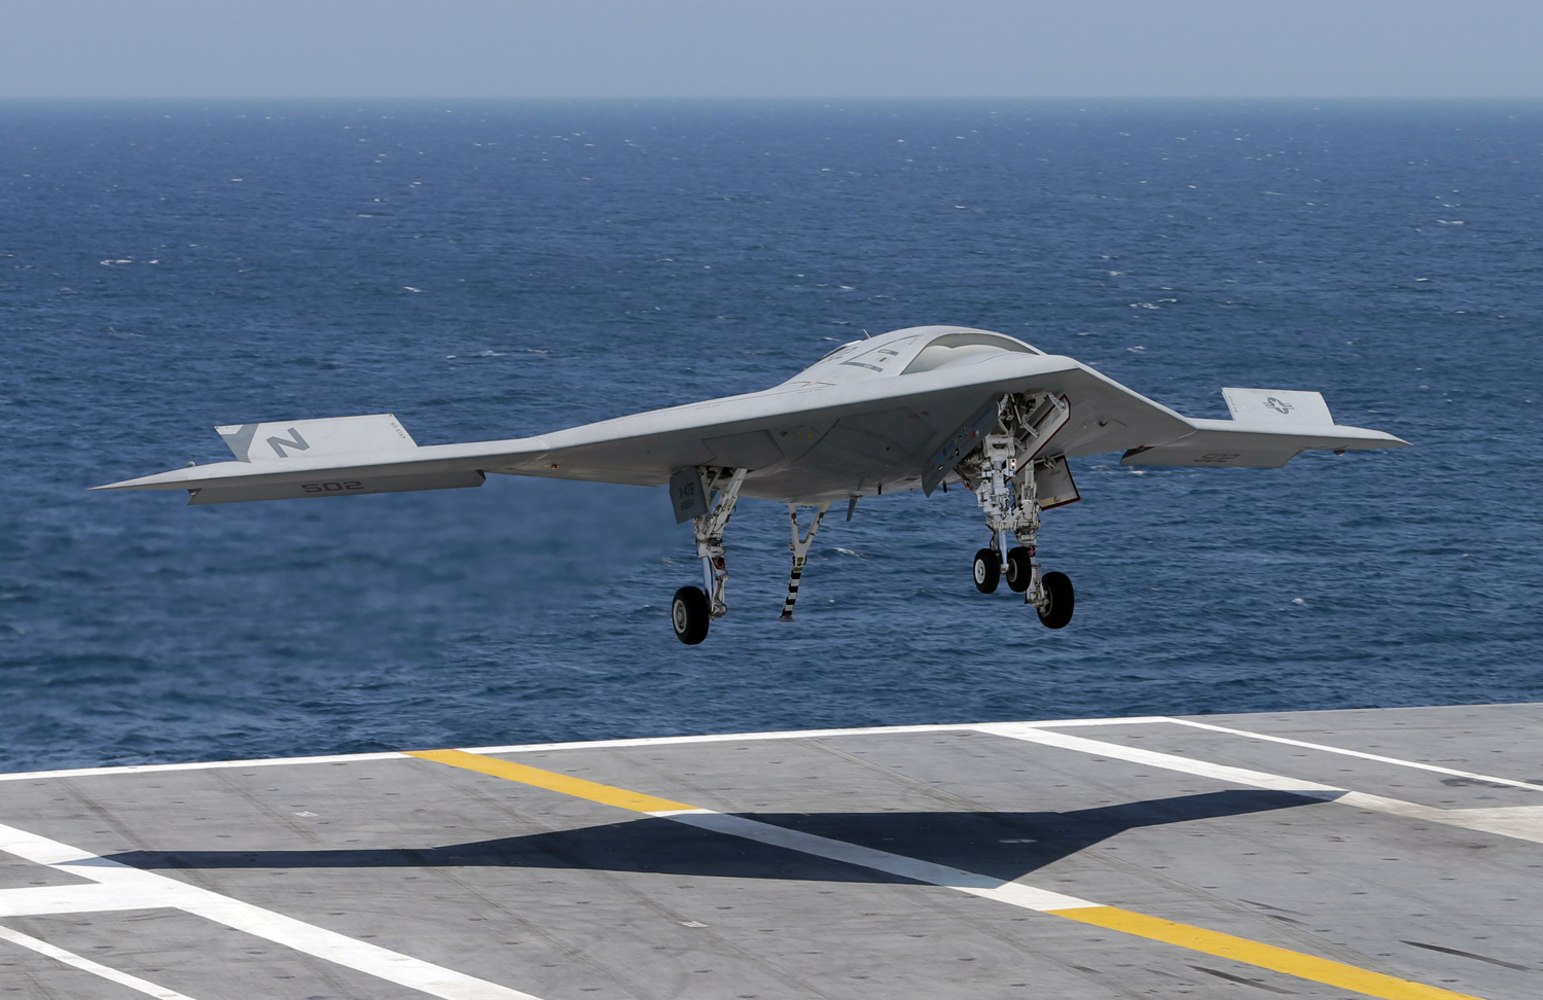 After two historic carrier landings, Navy's X-47B drone ...